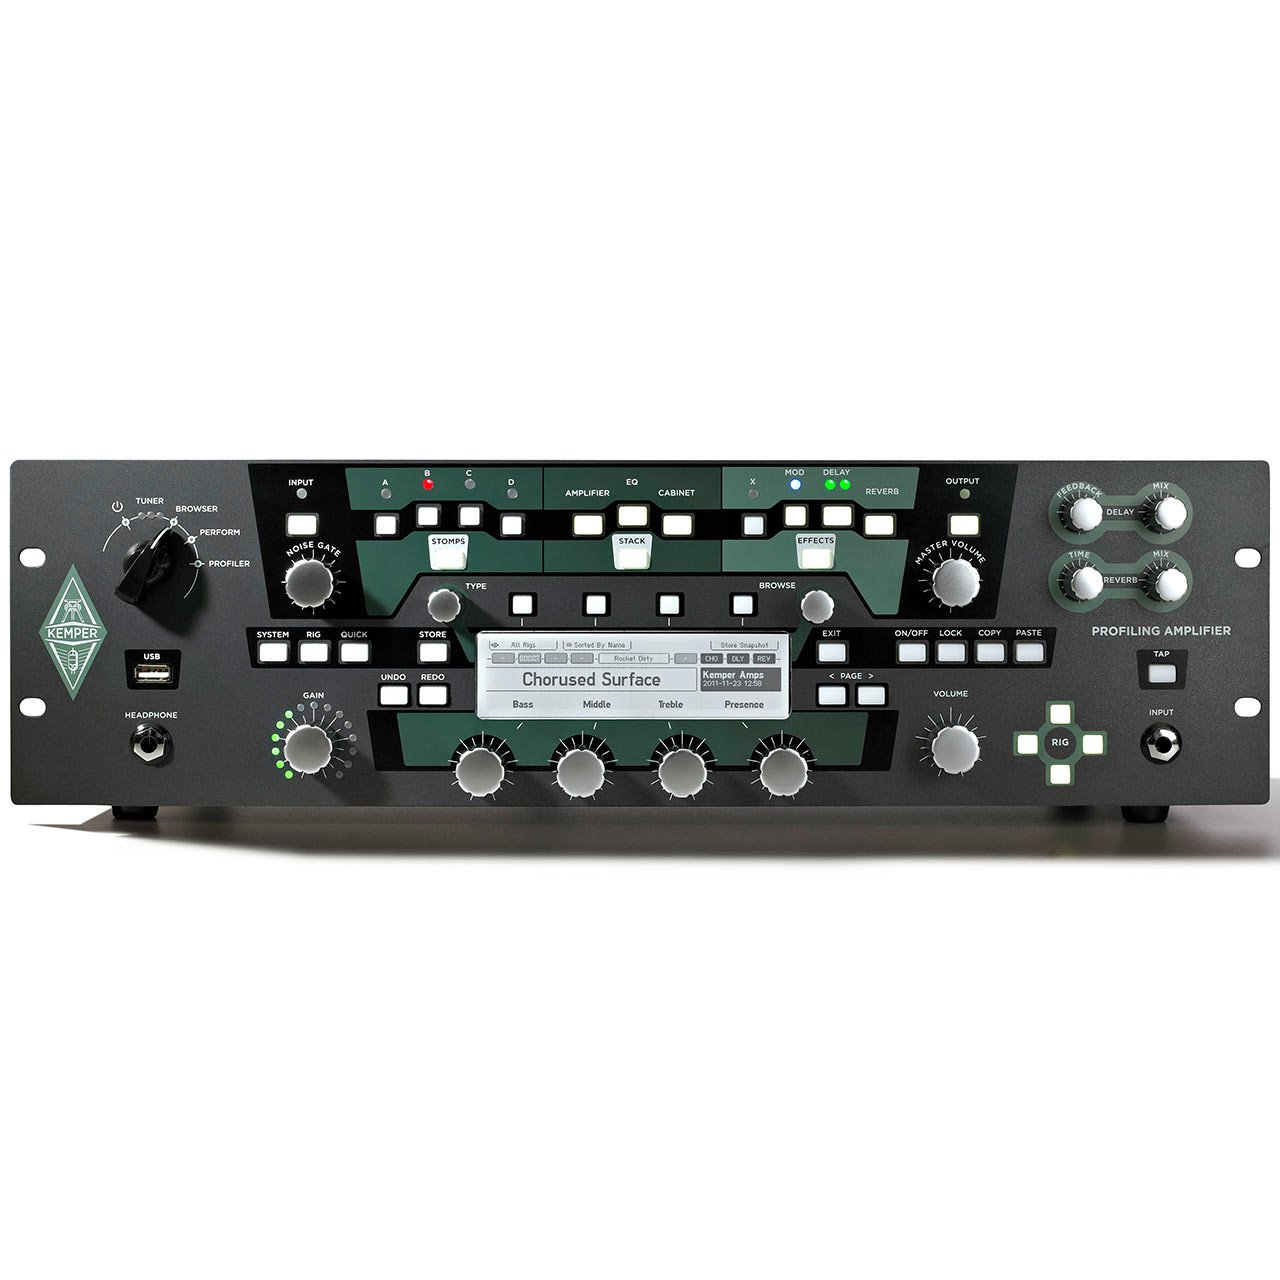 Guitar Amplifiers - Kemper Profiler Rack - Rack Mount Profiling Amplifier